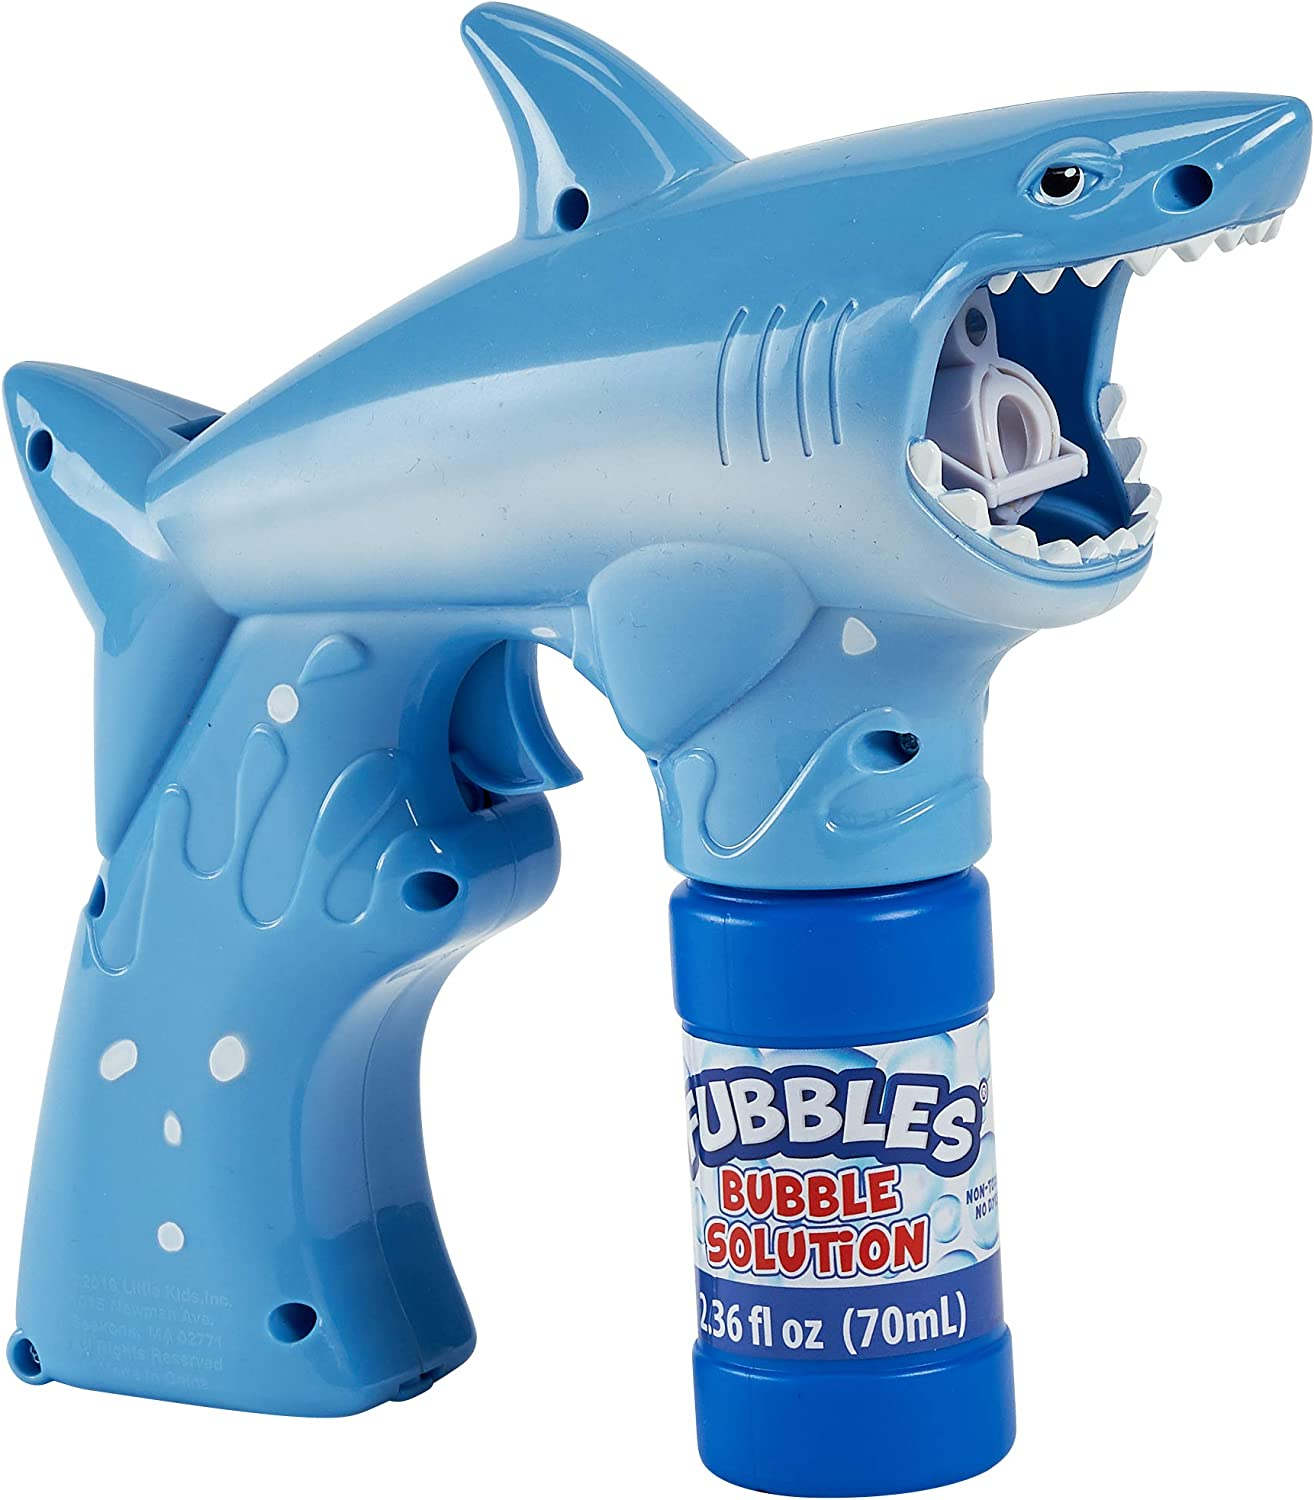 Little Kids Fubbles Shark Premium Quality Bubble Blaster for Boys and Girls with Fun Lights and Shark Themed Sounds. Premium Bubble Solution Included